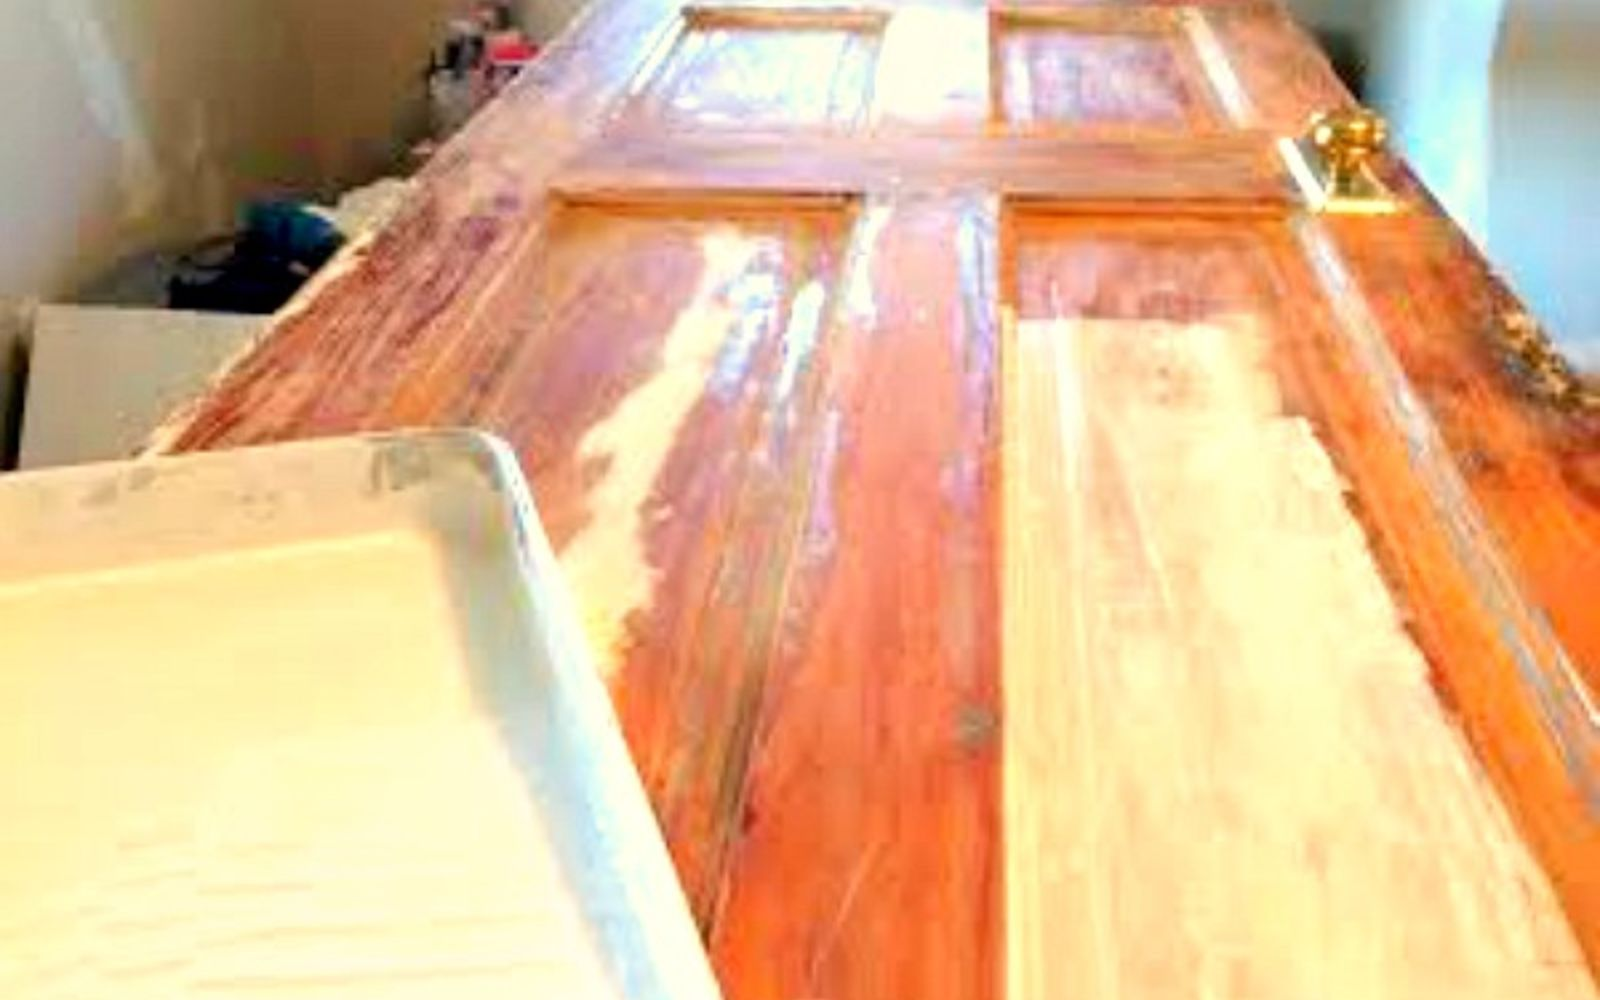 s 30 tricks to help you fix the wood in your home, Repair Cracks In A Door Panel With Glue